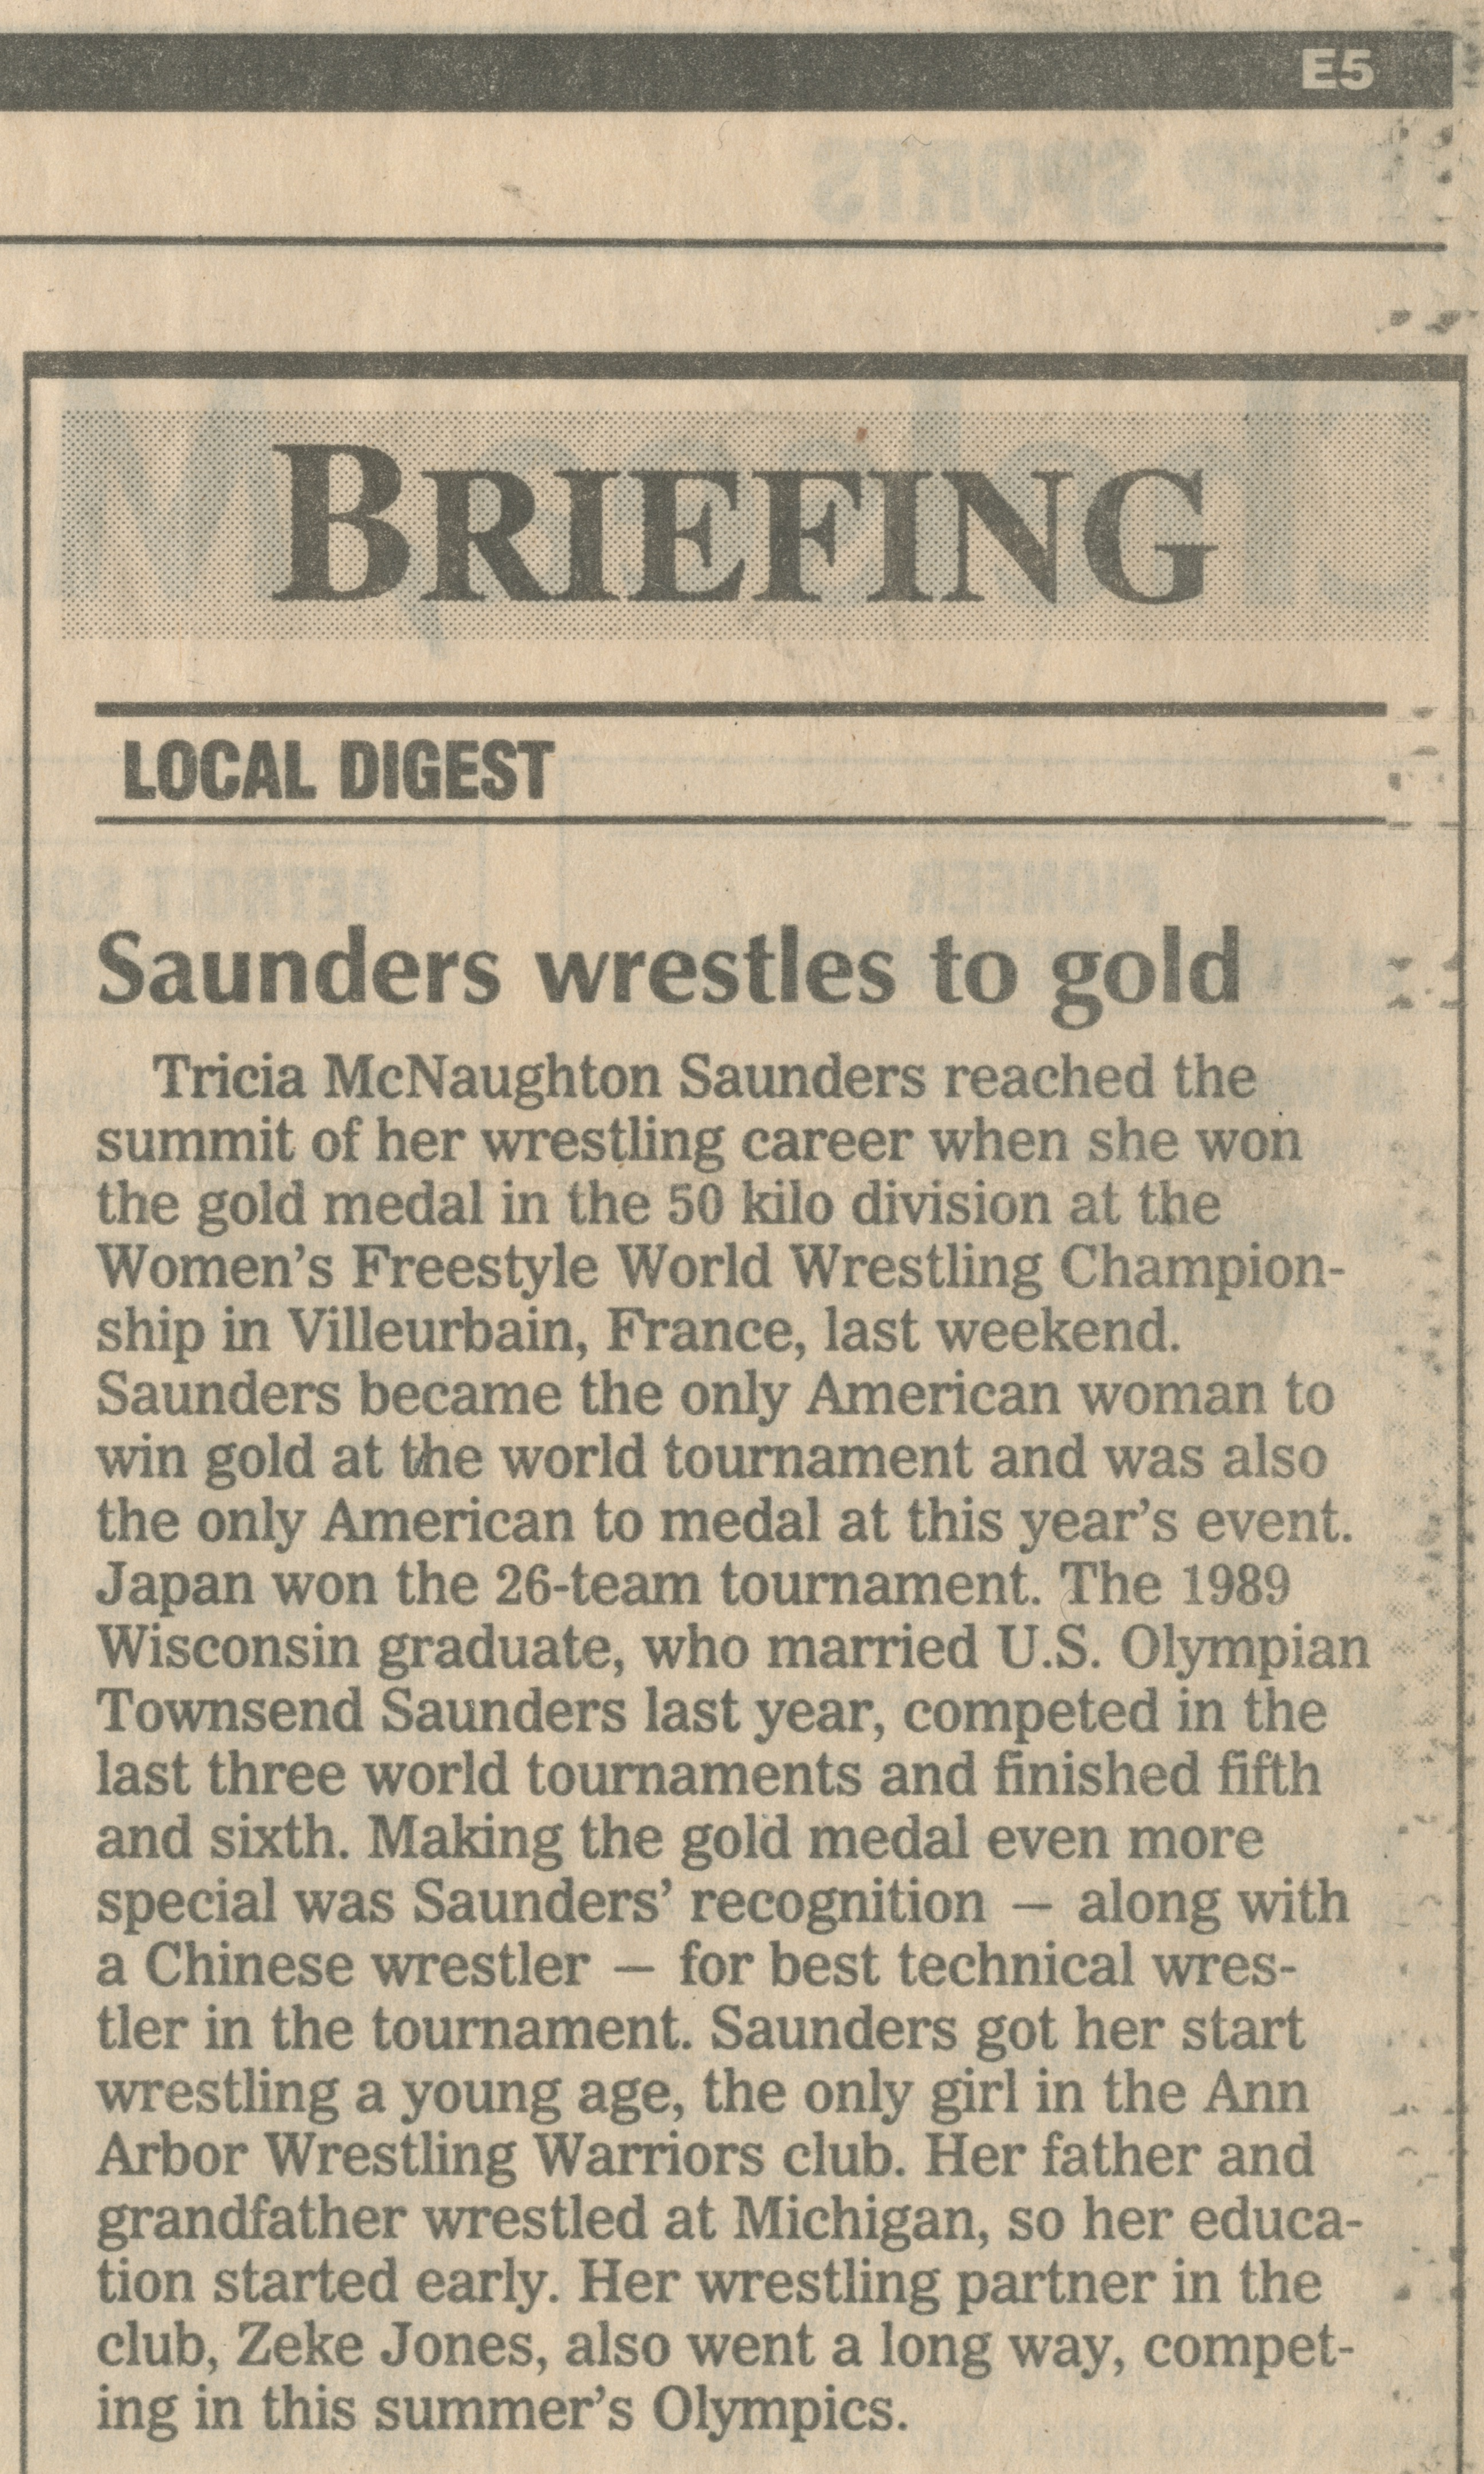 Saunders wrestles to gold image